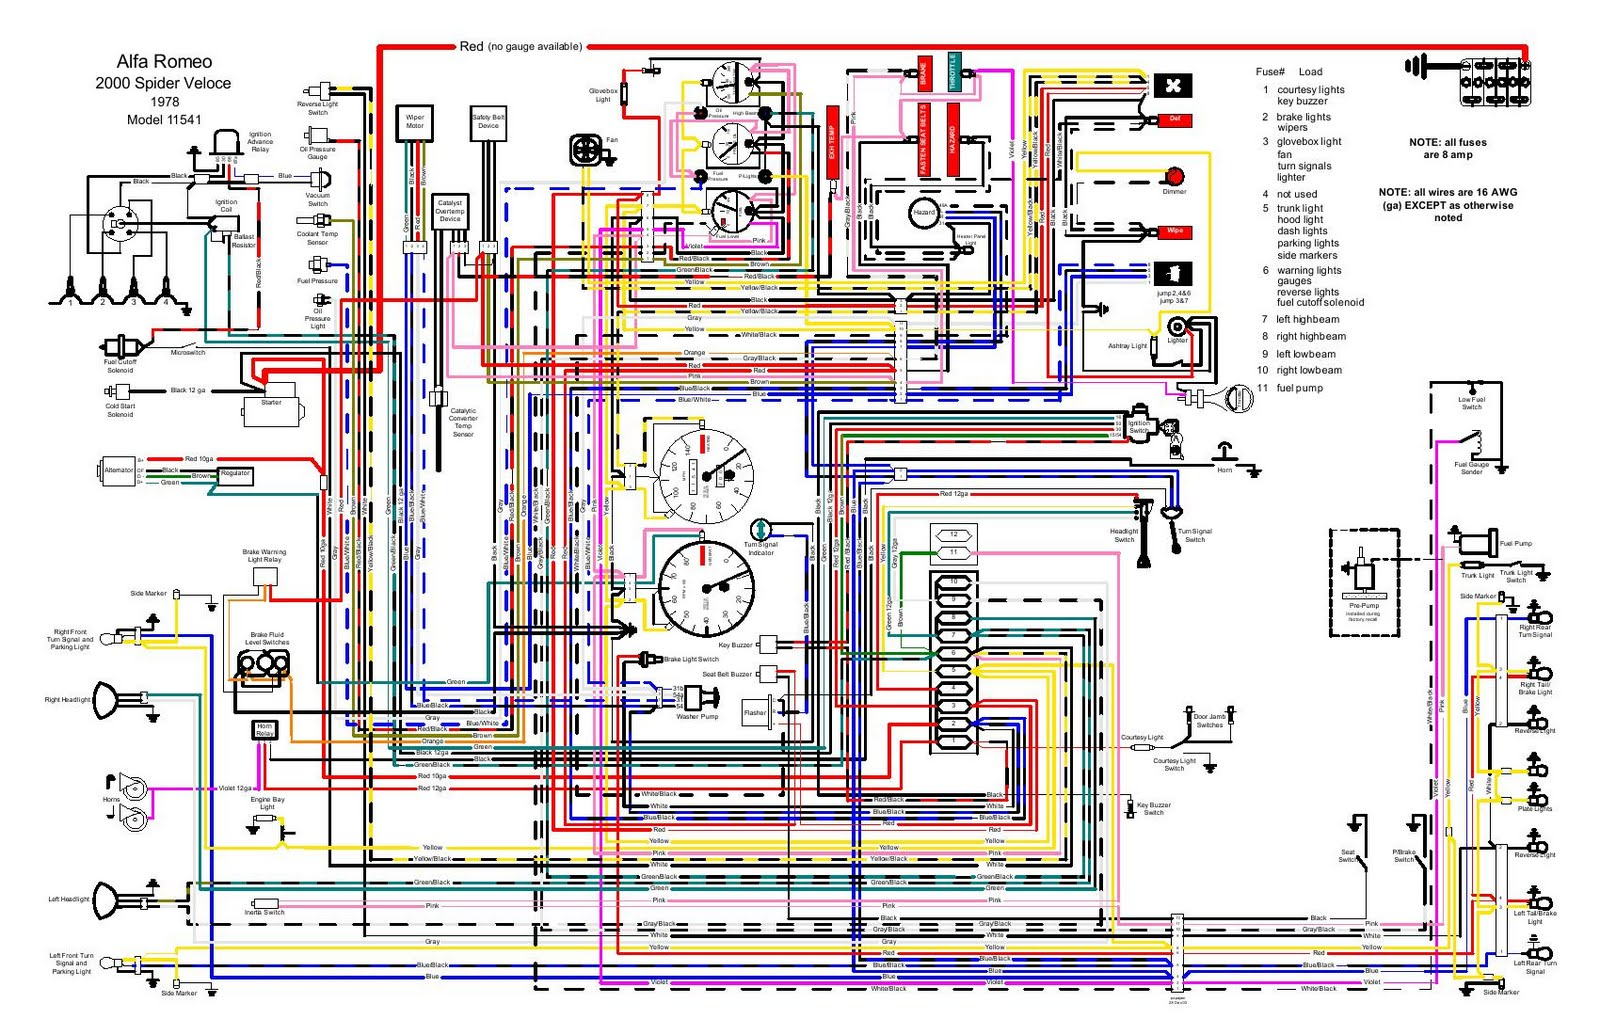 wiring diagram for 1978 alfa romeo spider CHaEWjz wiring diagrams cars readingrat net wiring schematics for cars at gsmx.co